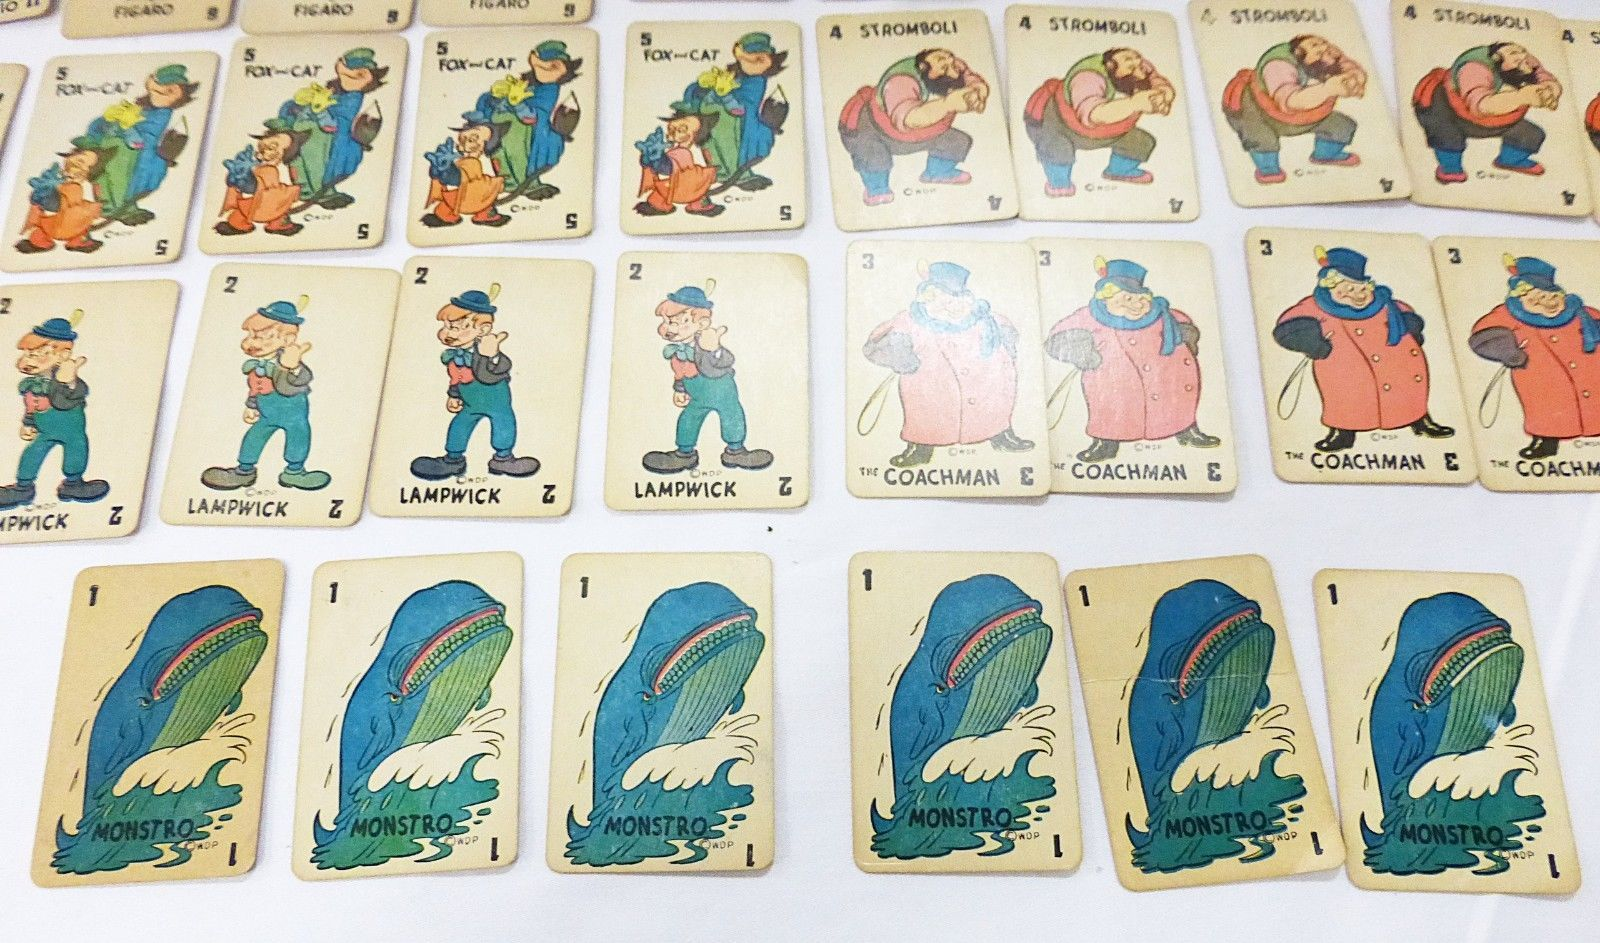 Vintage walt disney pinocchio 1946 game card 48 deck by russell MFG Co